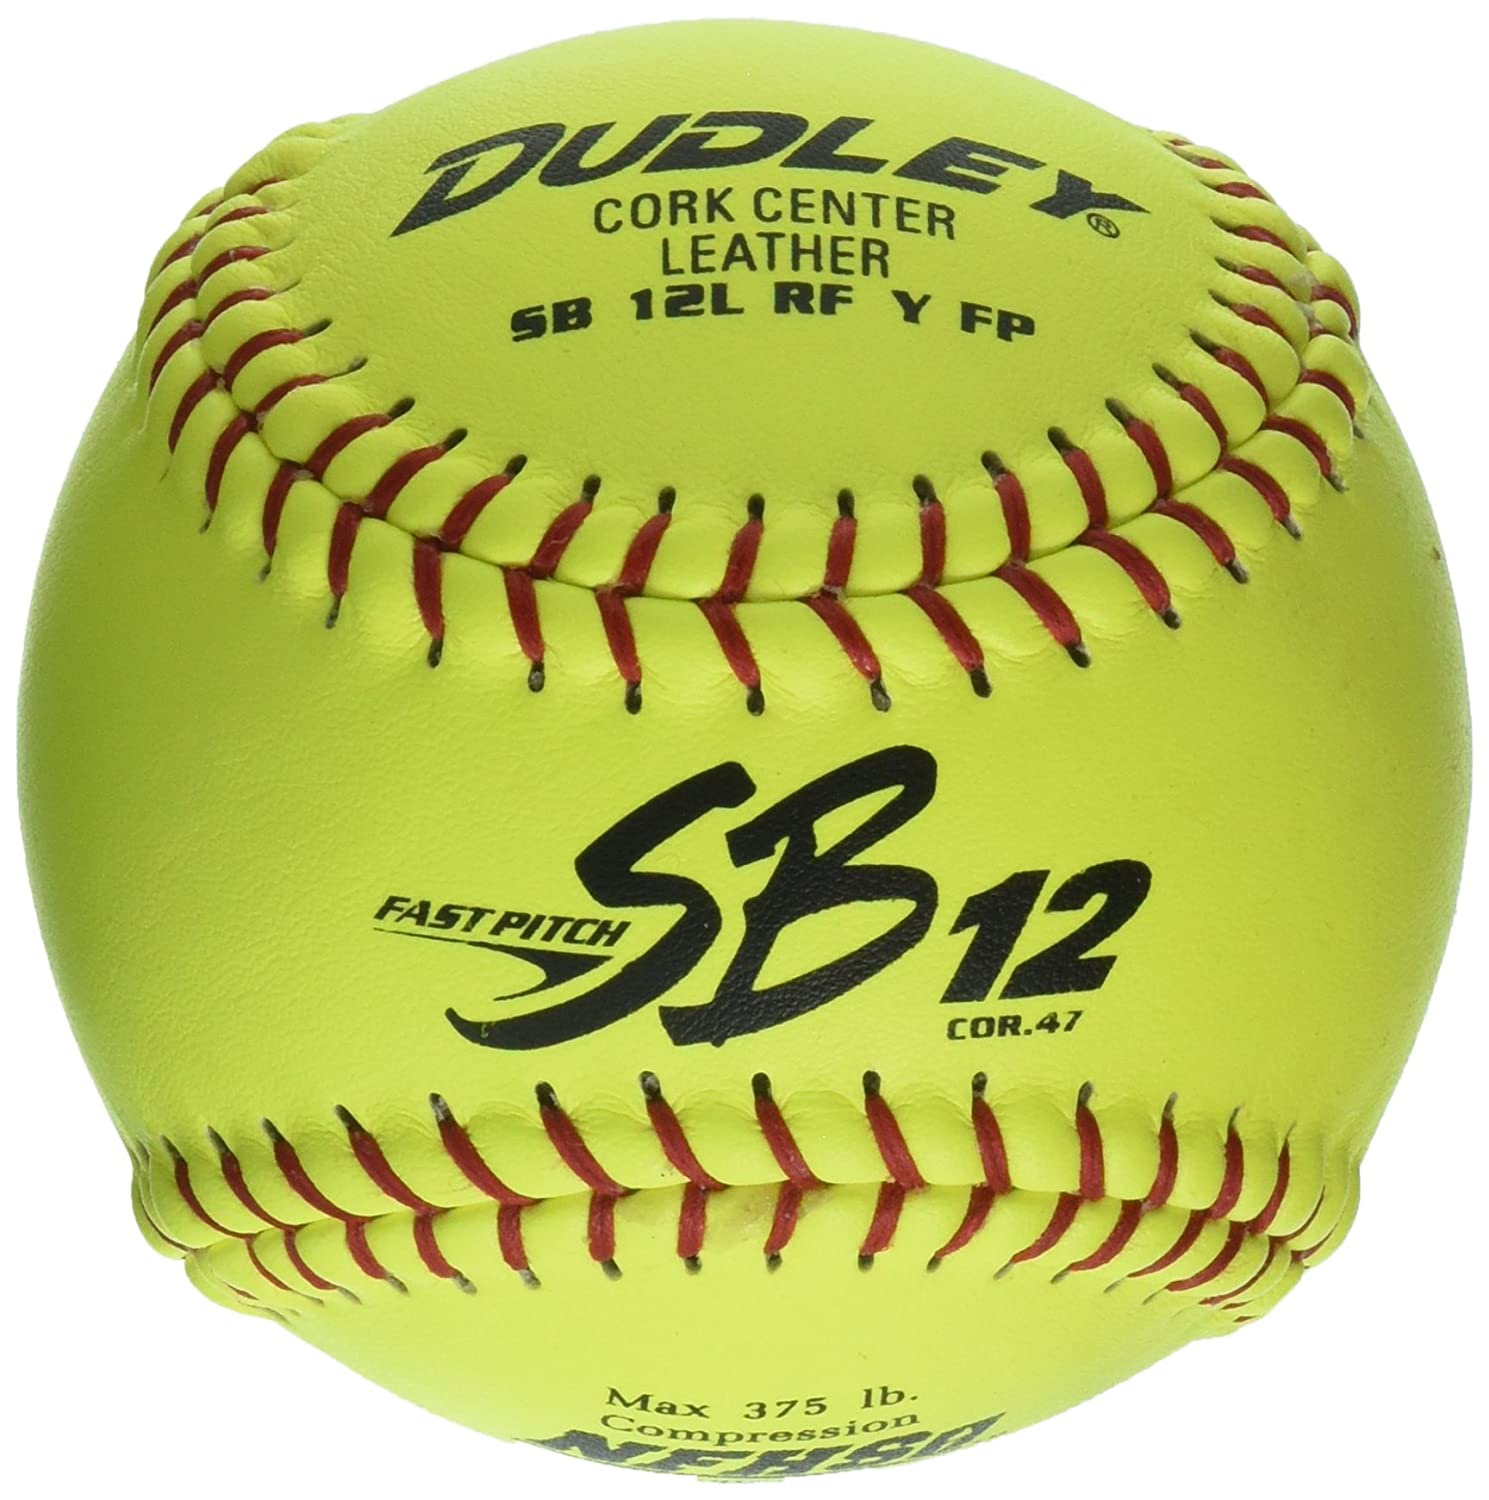 Dudley NFHS SB NFHS 12lレザーイエロー高速ピッチソフトボール( 47/ 375-pounds 12-inch 12-inch 375-pounds ) B002MVLO1E イエロー, 代官山お買い物通り:25e994a8 --- sayselfiee.com